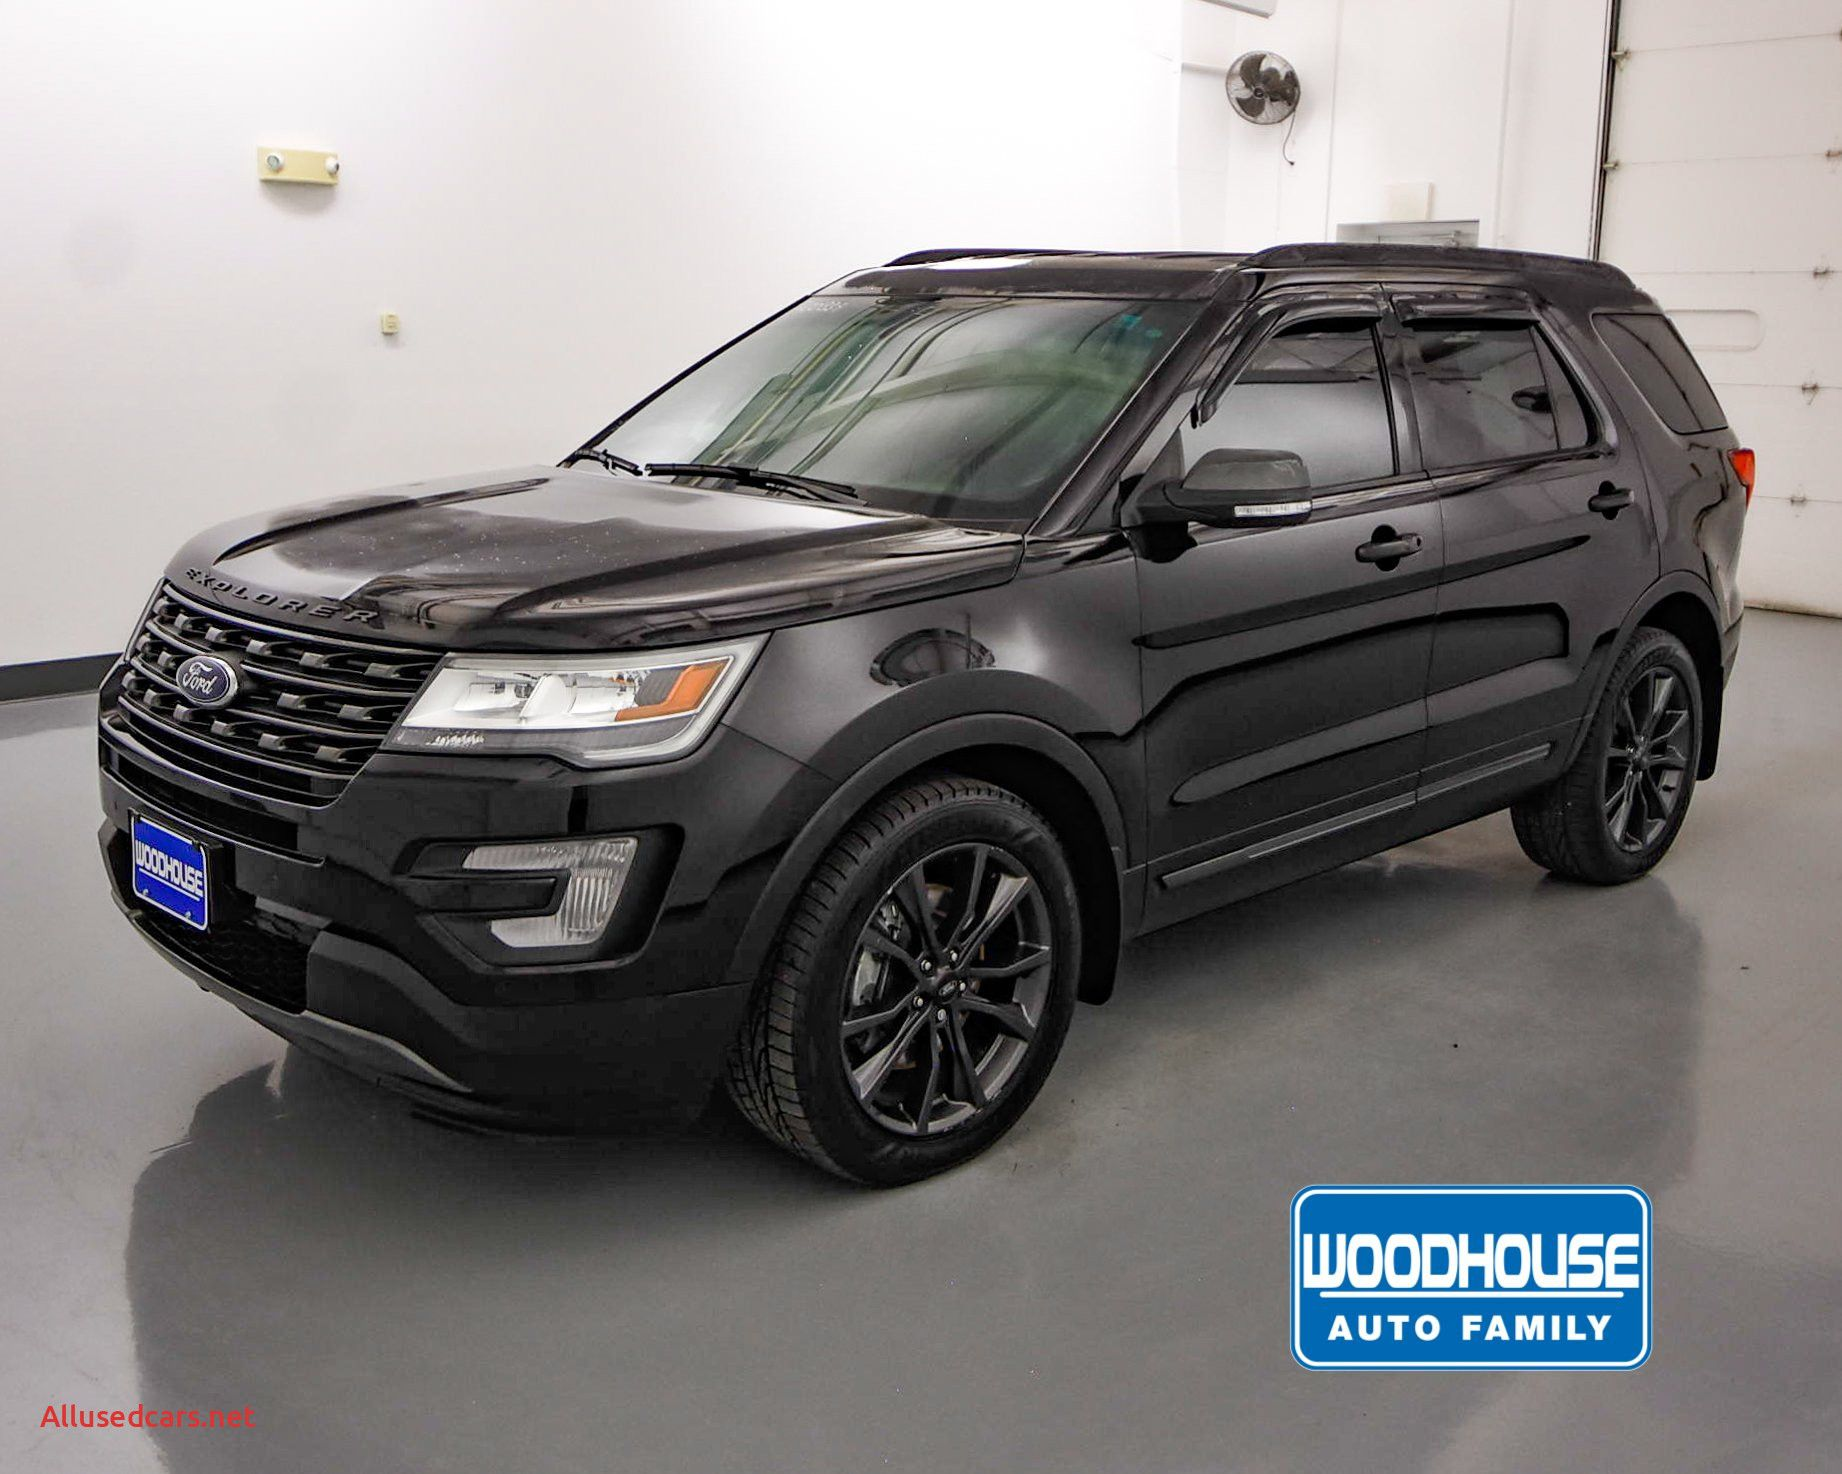 2020 Ford Explorer St Pov Drive Winding Road 2020 Ford Explorer Ford Explorer Ford Explorer Xlt